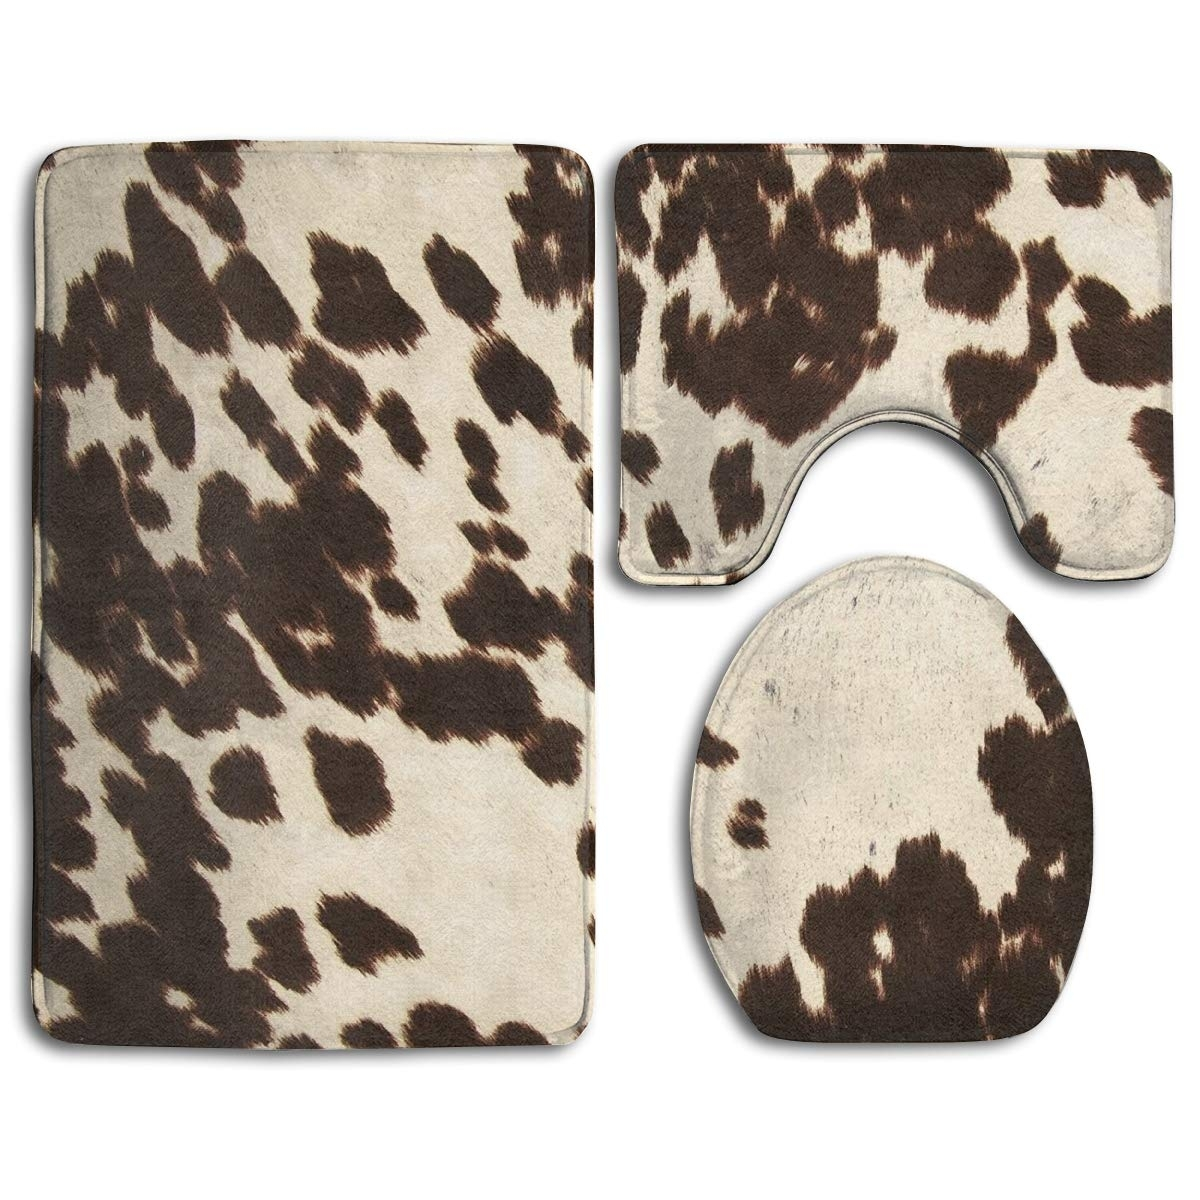 Best Selling Brown Cowhide 3 Piece Bathroom Rugs Set Bath Rug Contour Mat And Toilet Lid Cover Accuweather Shop